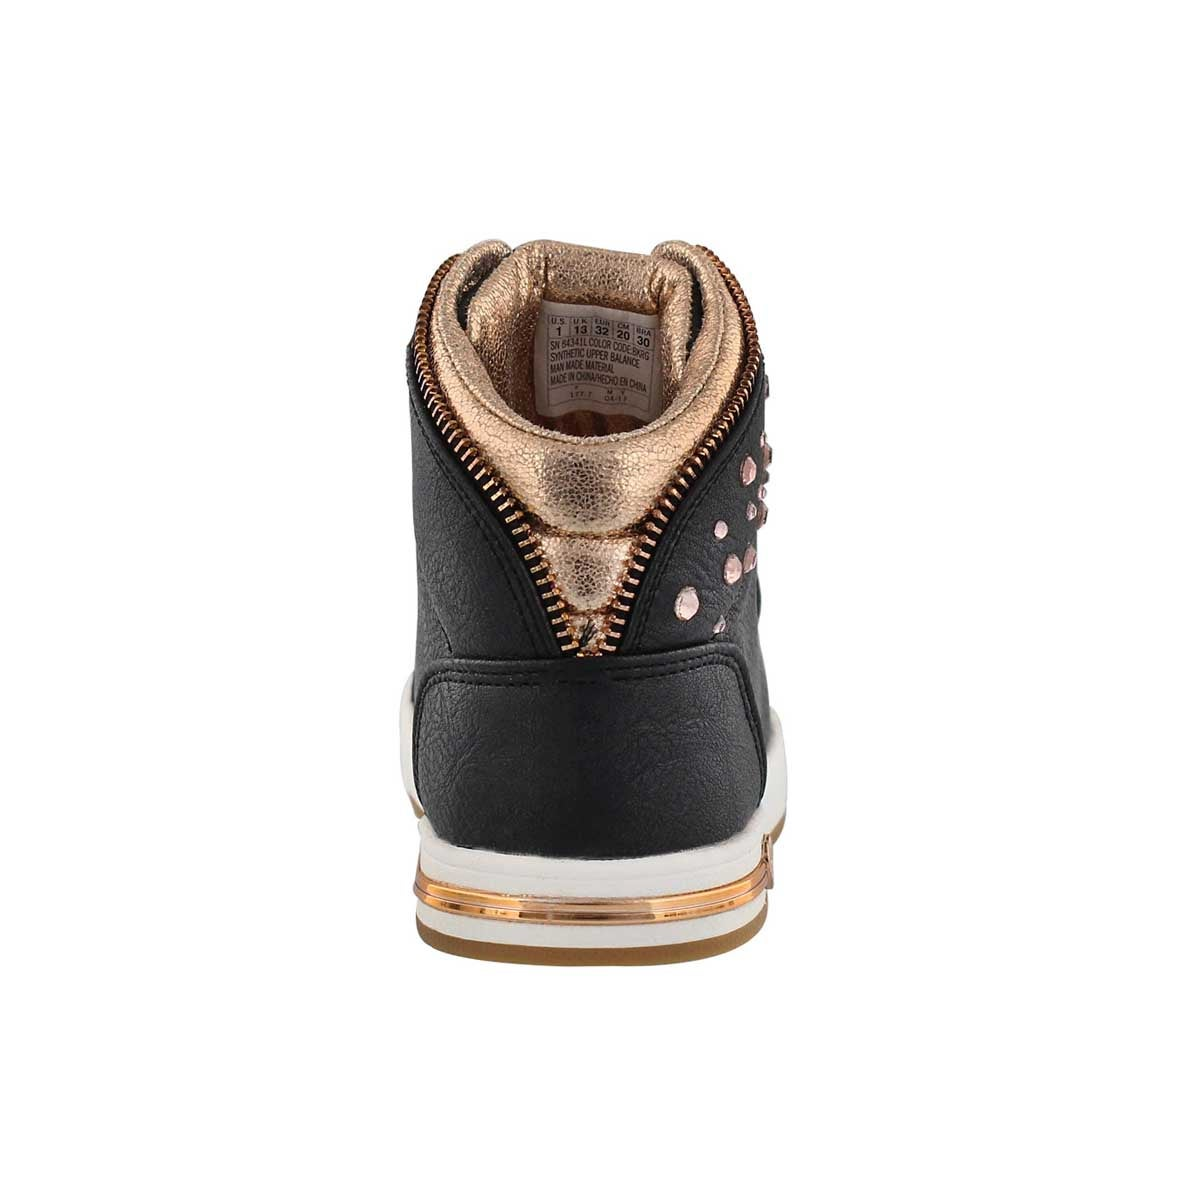 Grls Shoutouts black high top sneaker